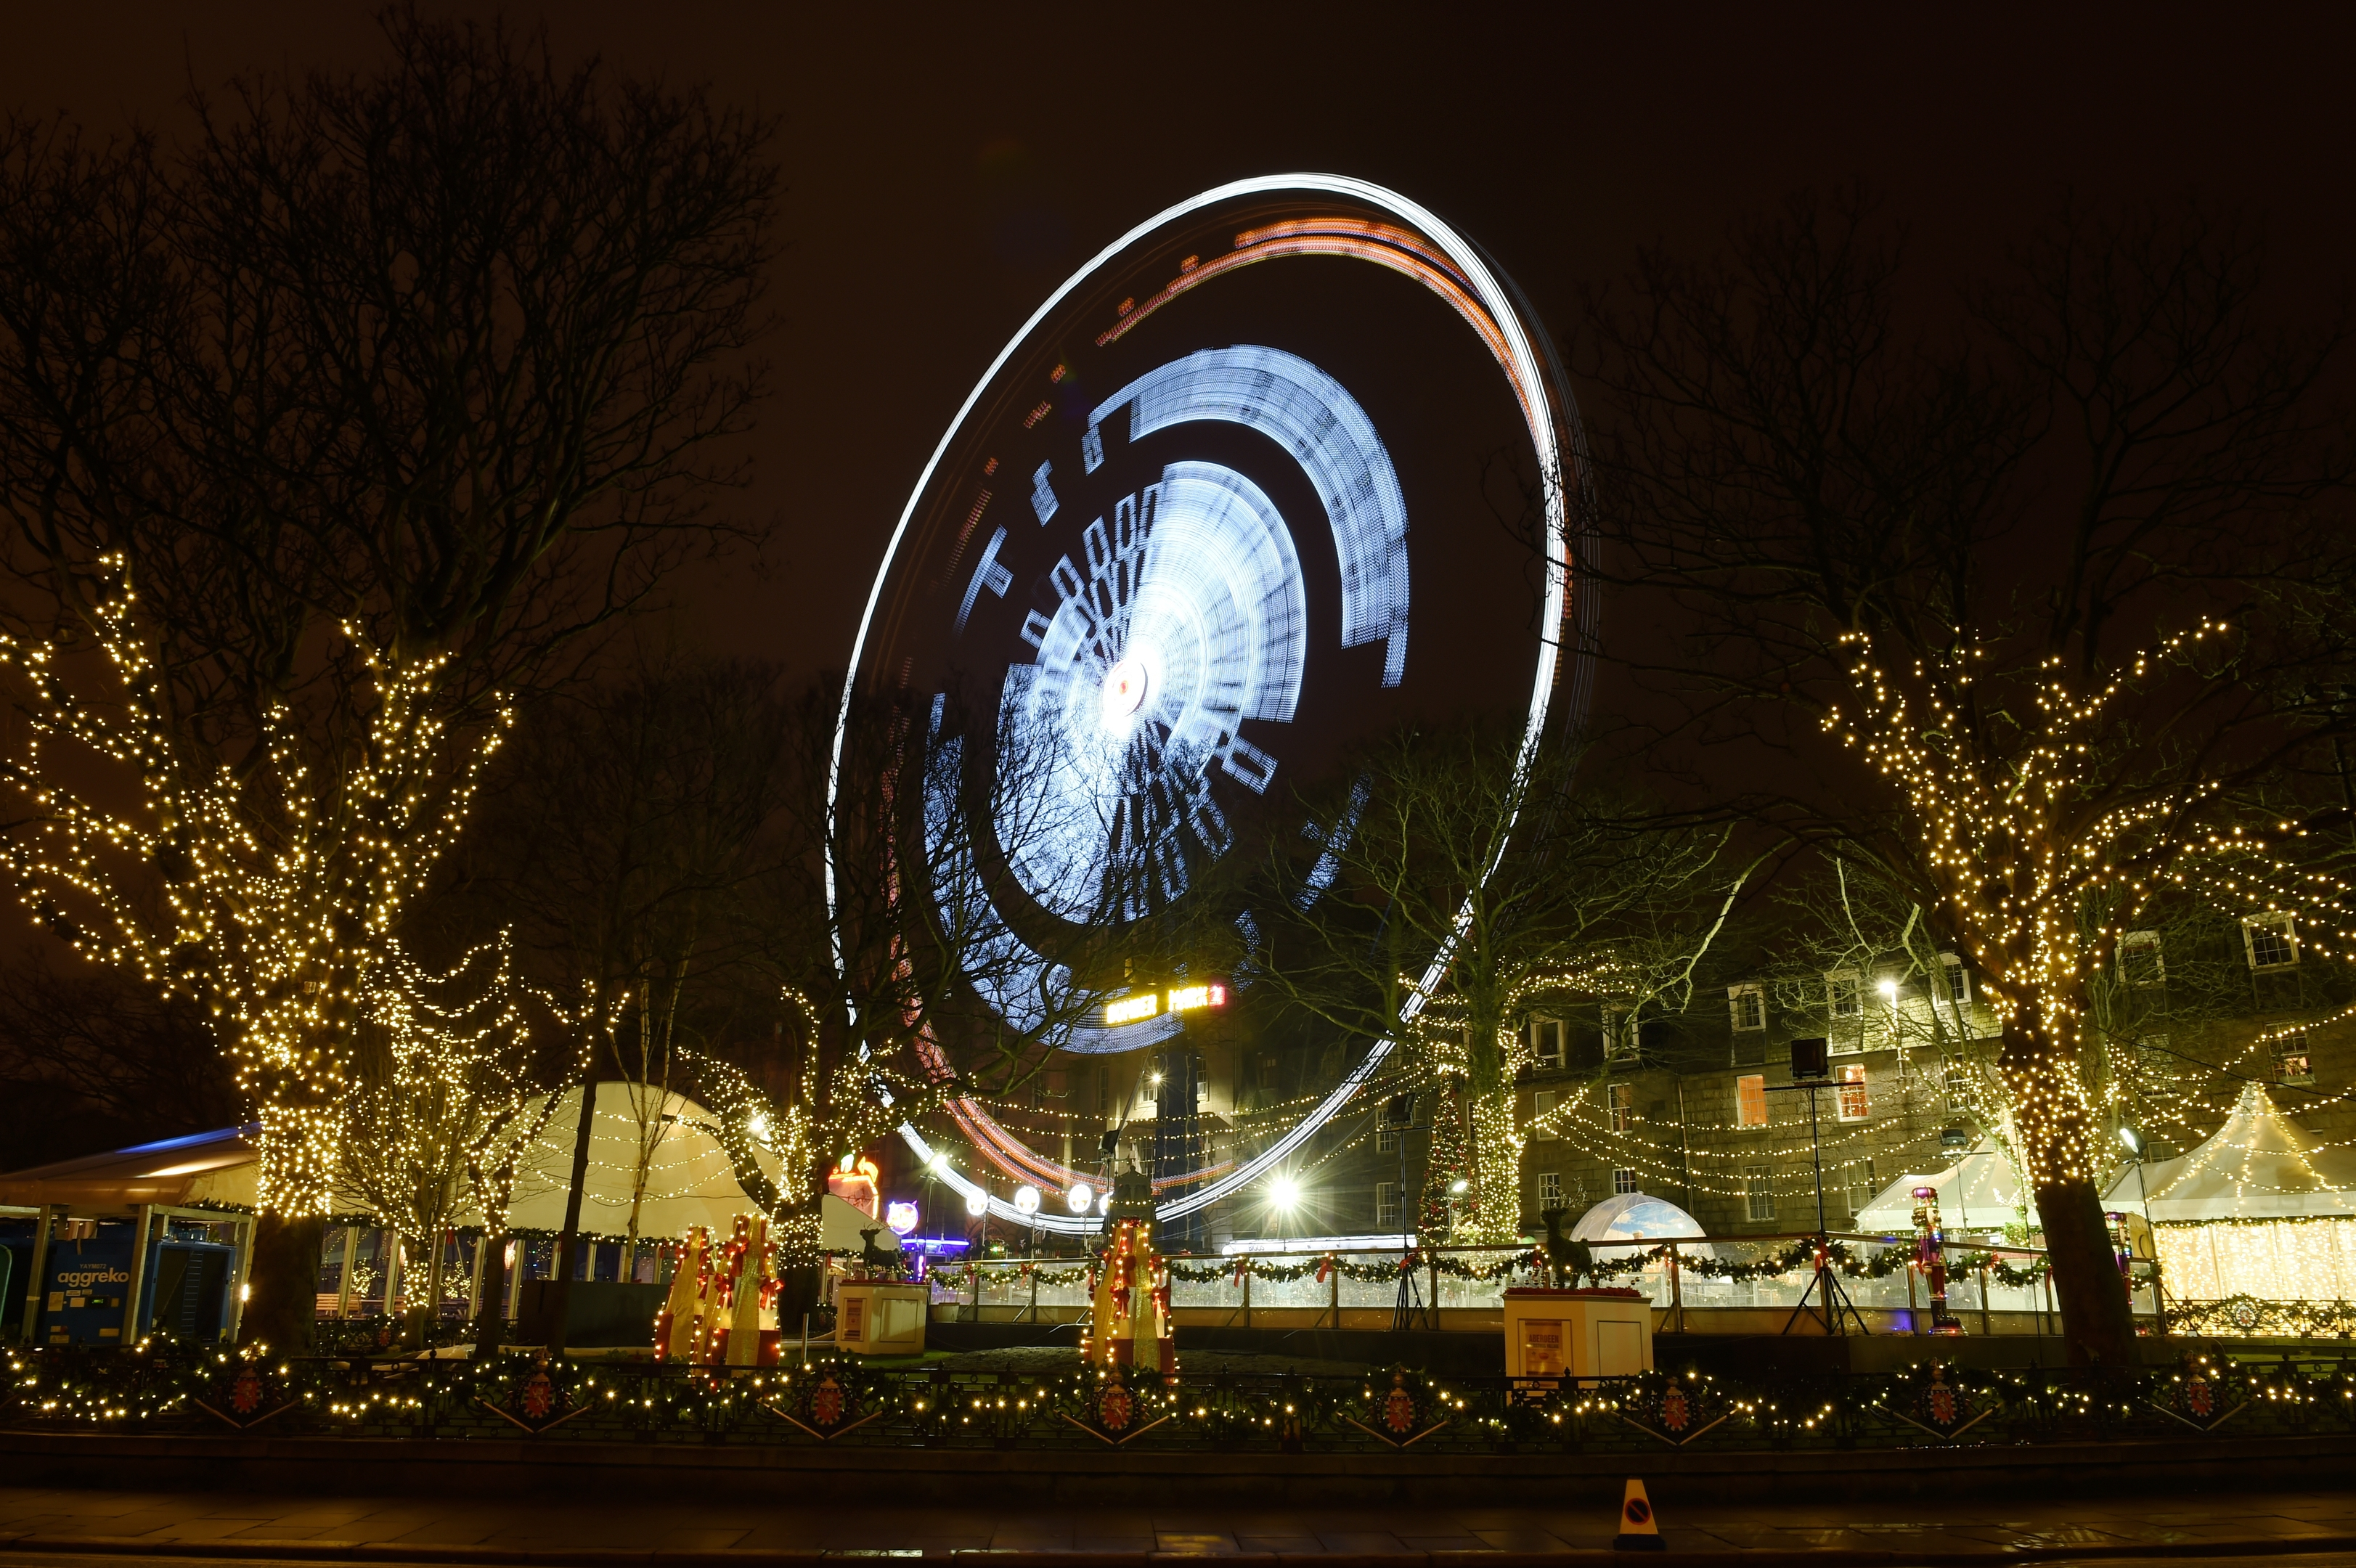 Aberdeen Winter Festival